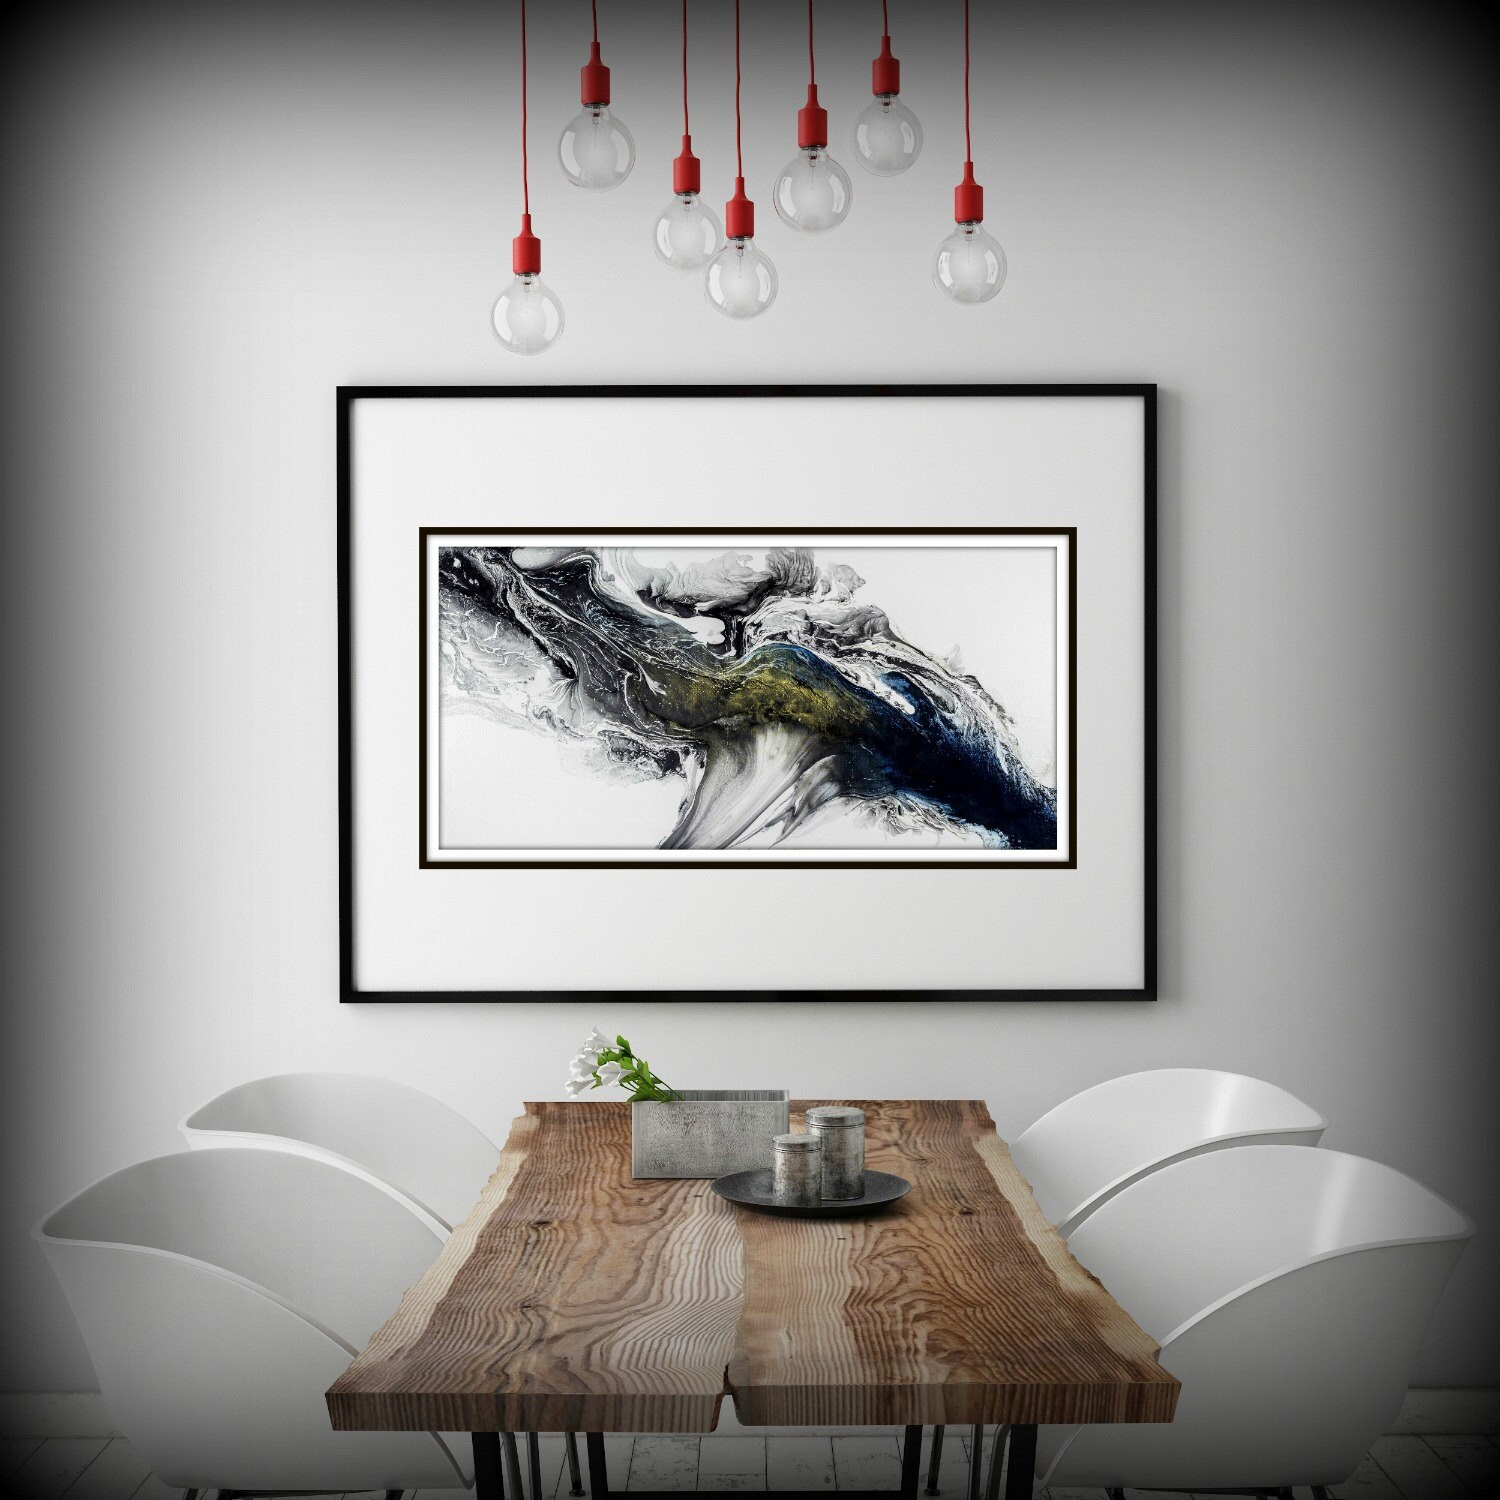 Black and white wall art gift abstract painting print for Modern home decor gifts